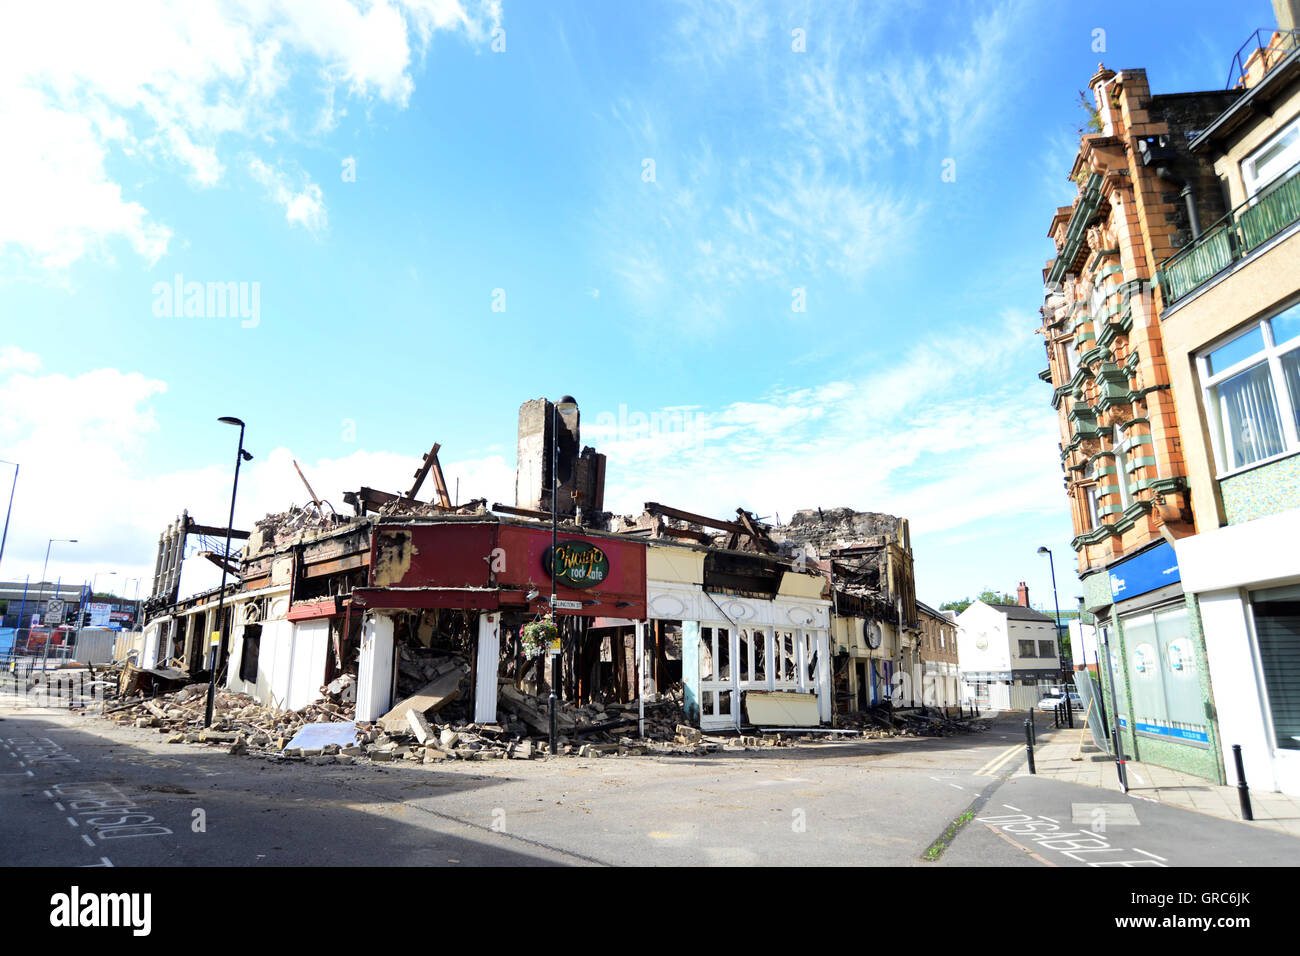 Former Barnsley nightclub Chicago Rock is demolished after it caught fire in August 2016. - Stock Image